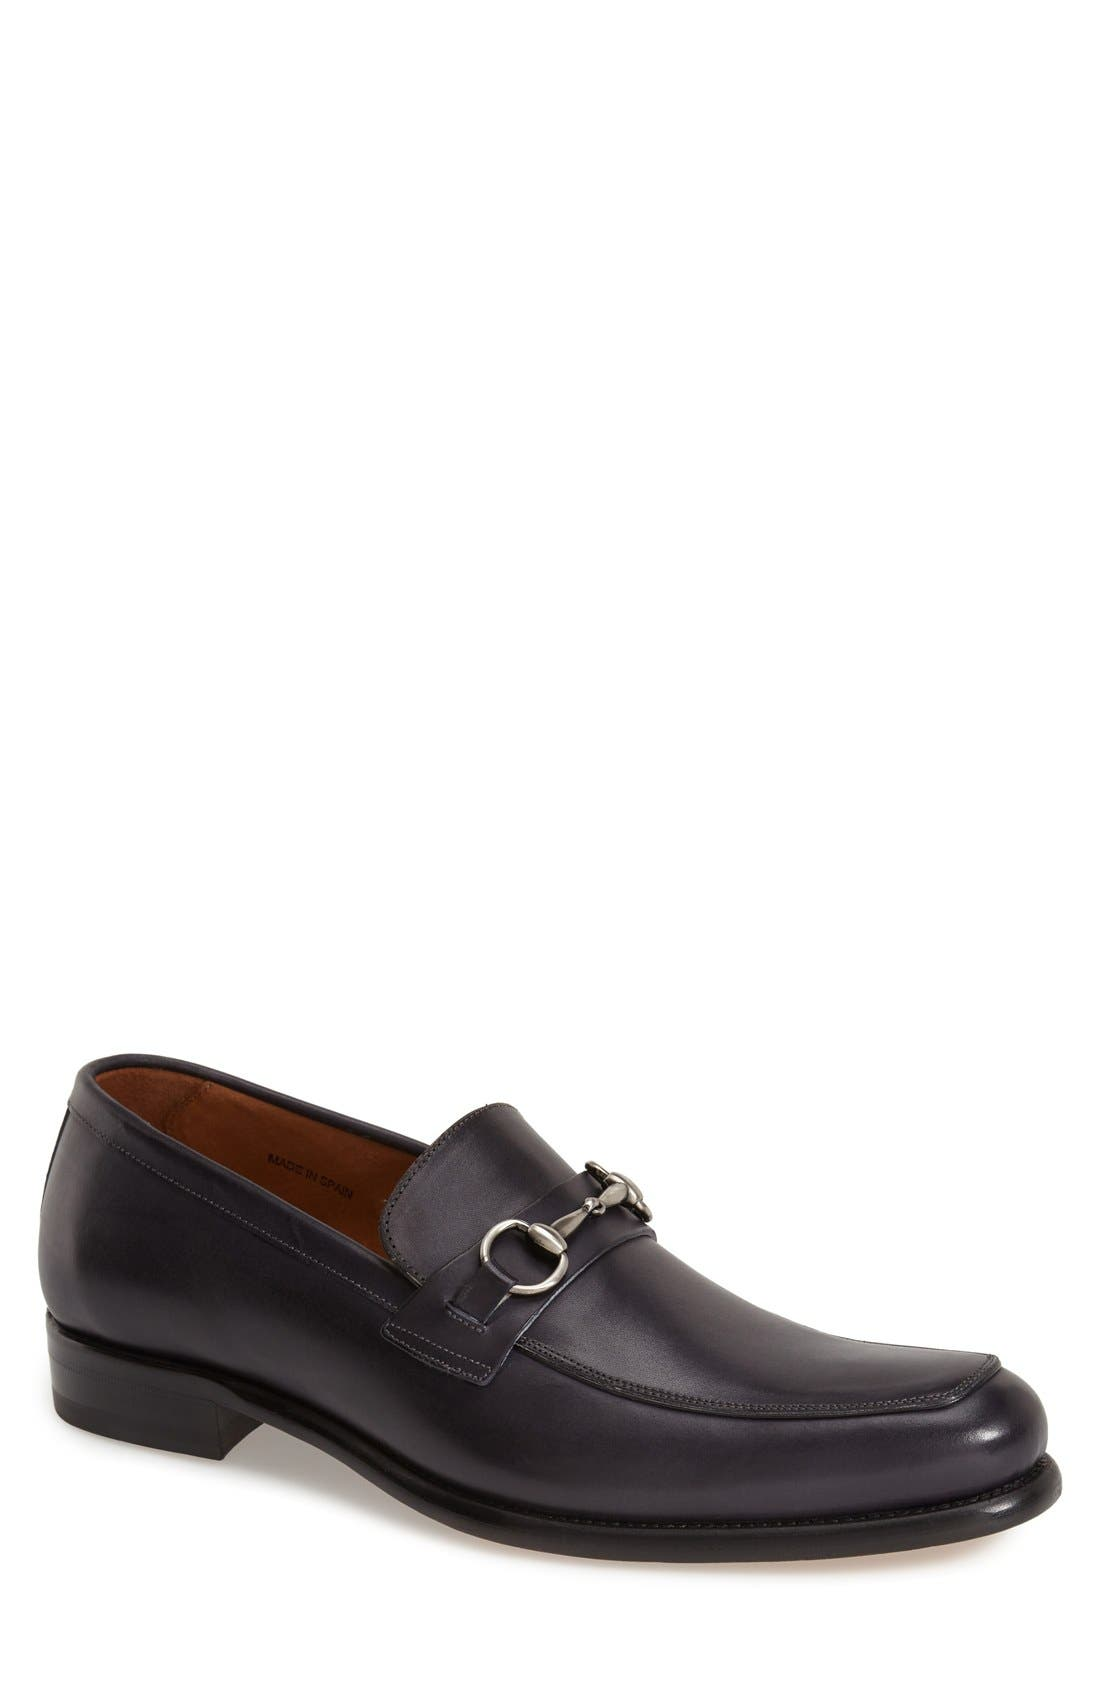 'Worcester' Bit Loafer,                             Main thumbnail 1, color,                             Black